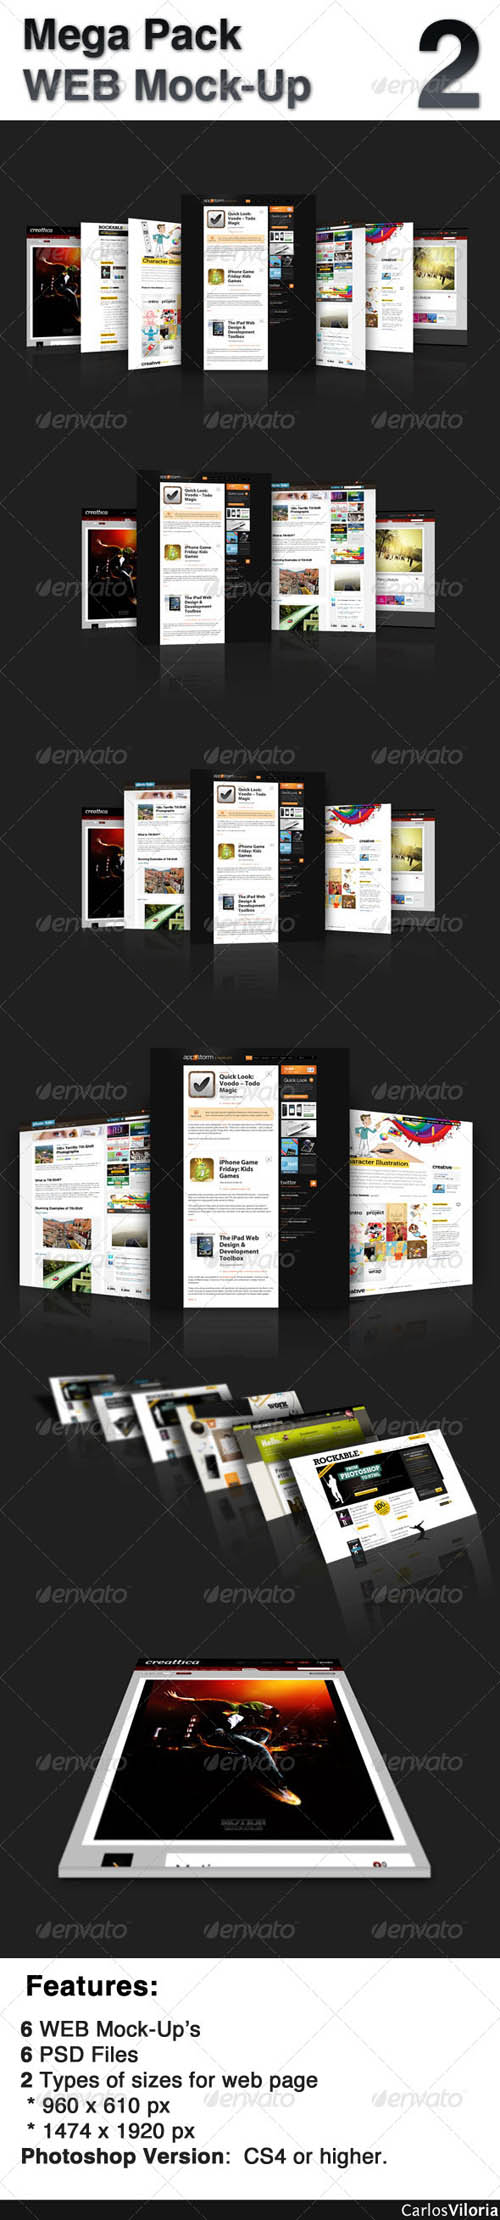 Mega Pack WEB Mock-Up 2  - GraphicRiver (RE-UPLOADED)